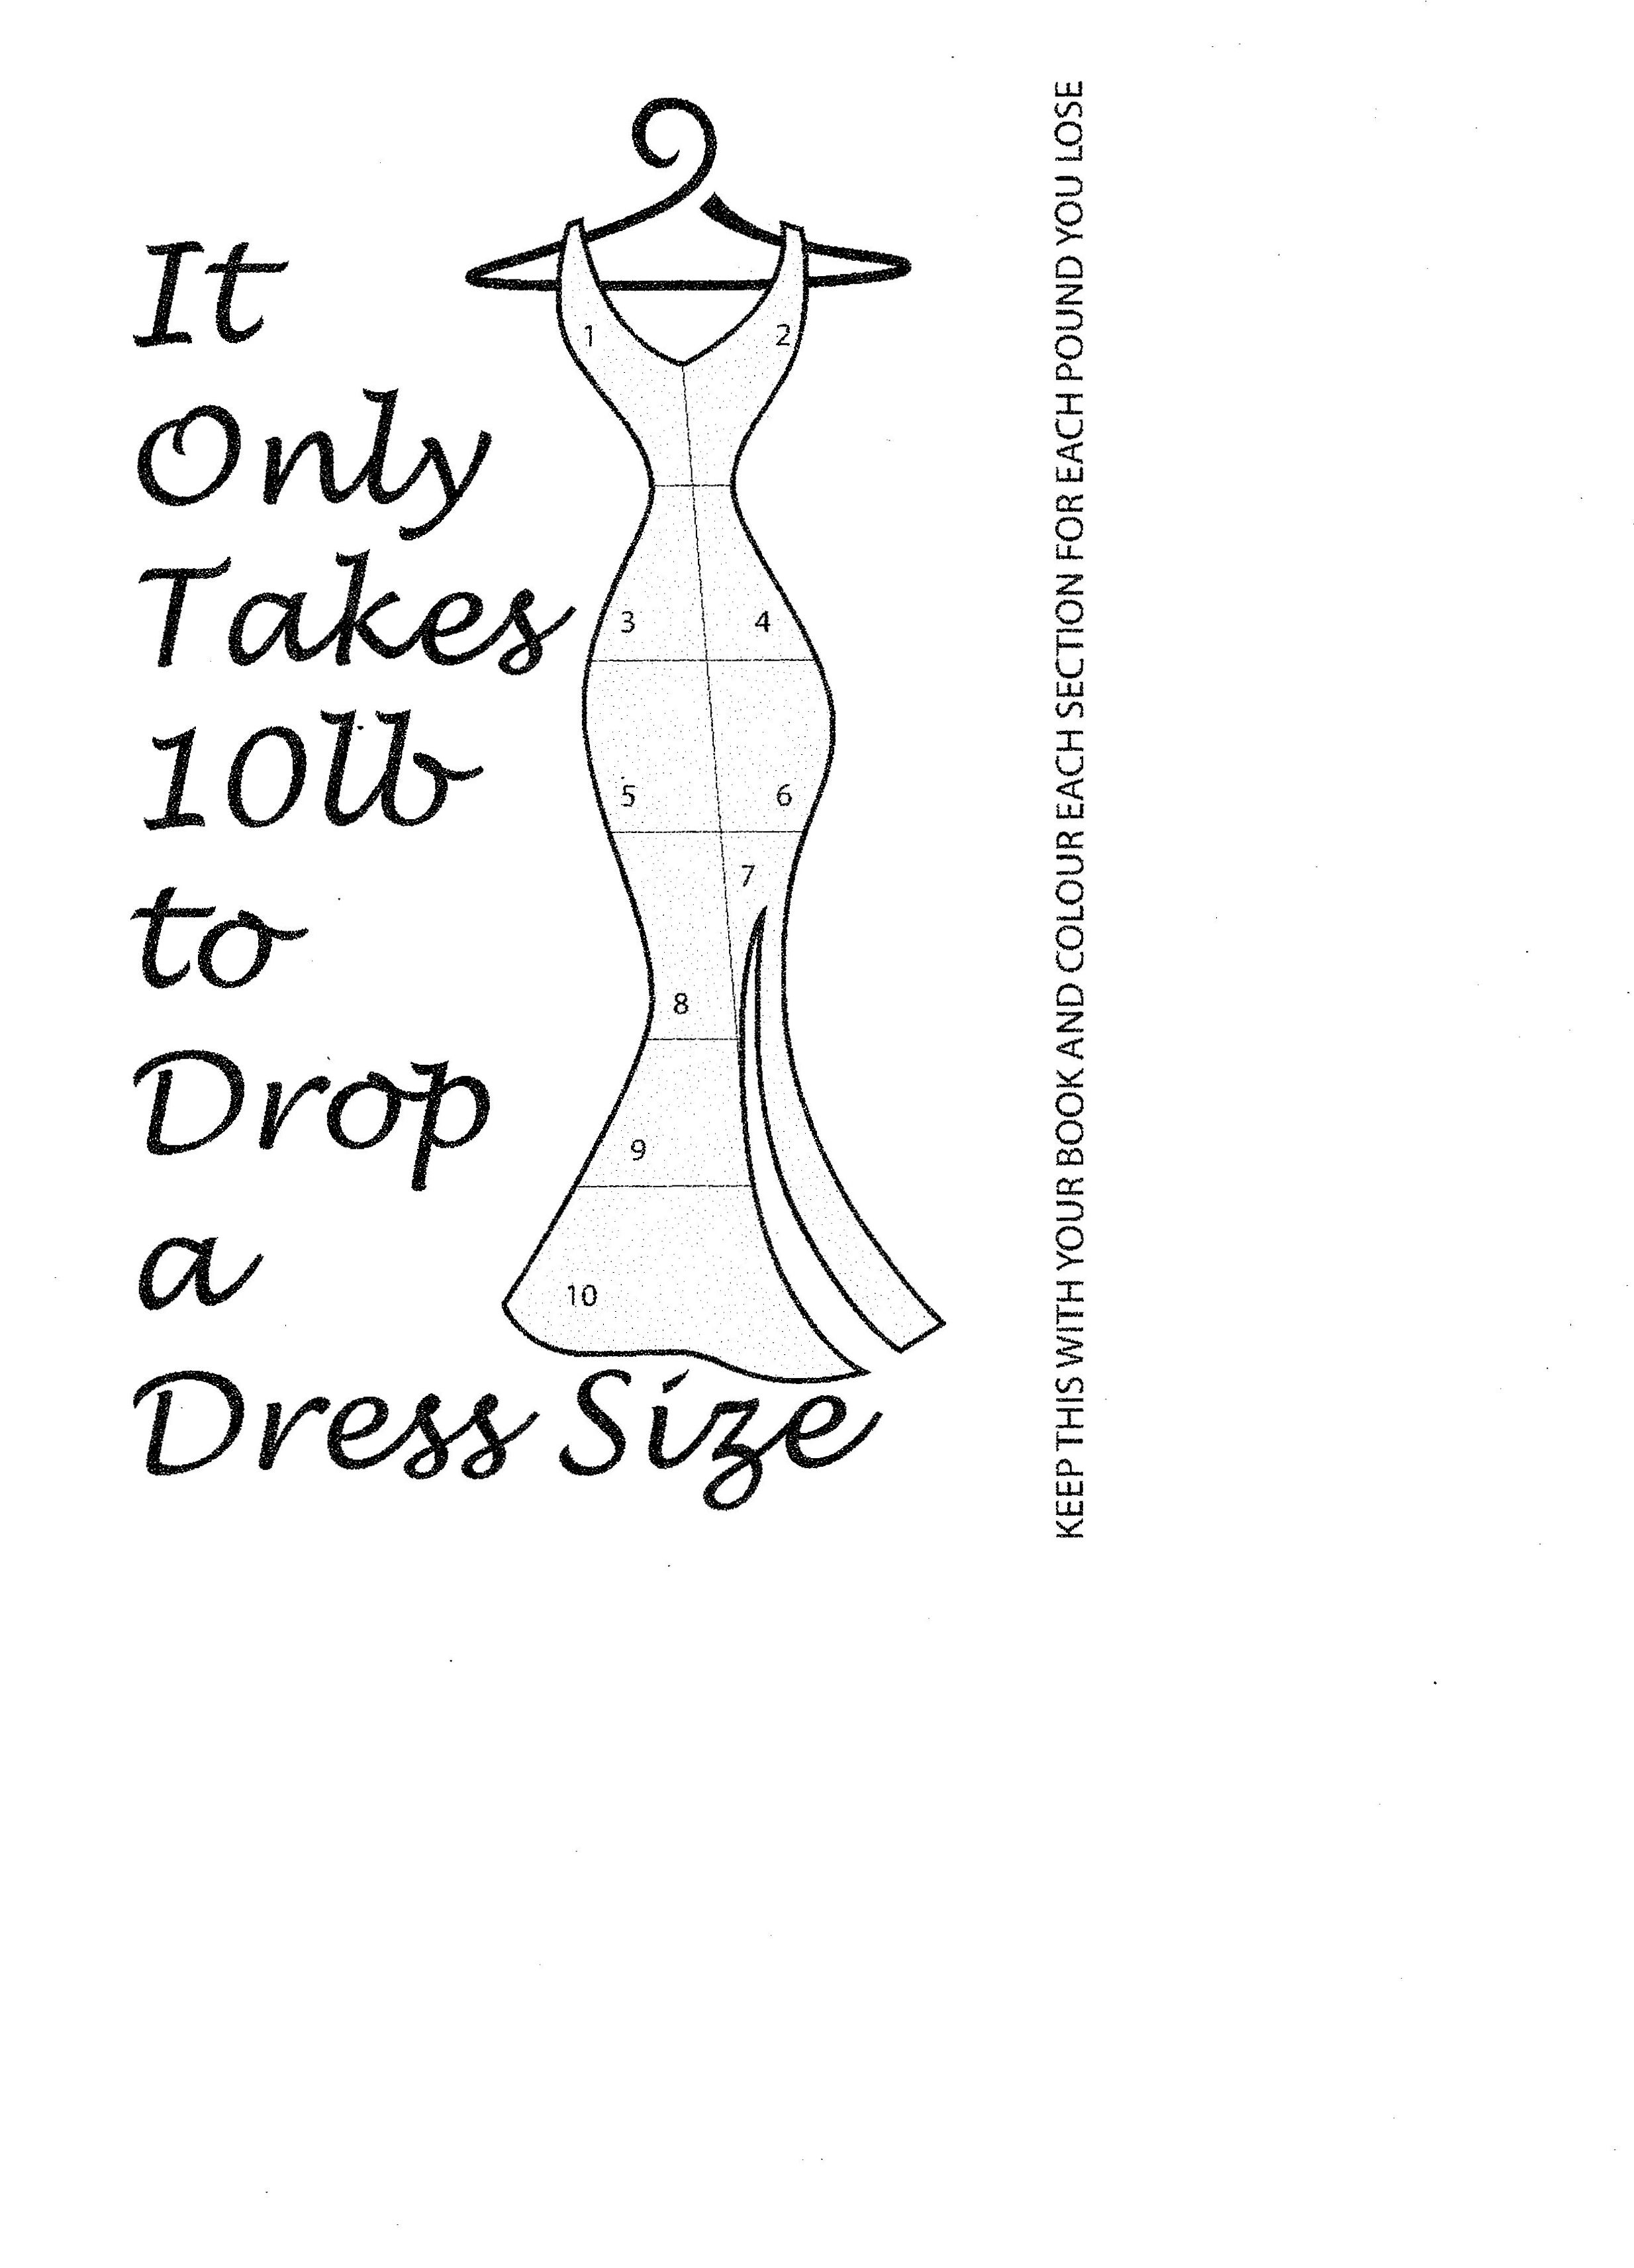 Lose 10 Lbs And Drop A Dress Size Colour In Each Section